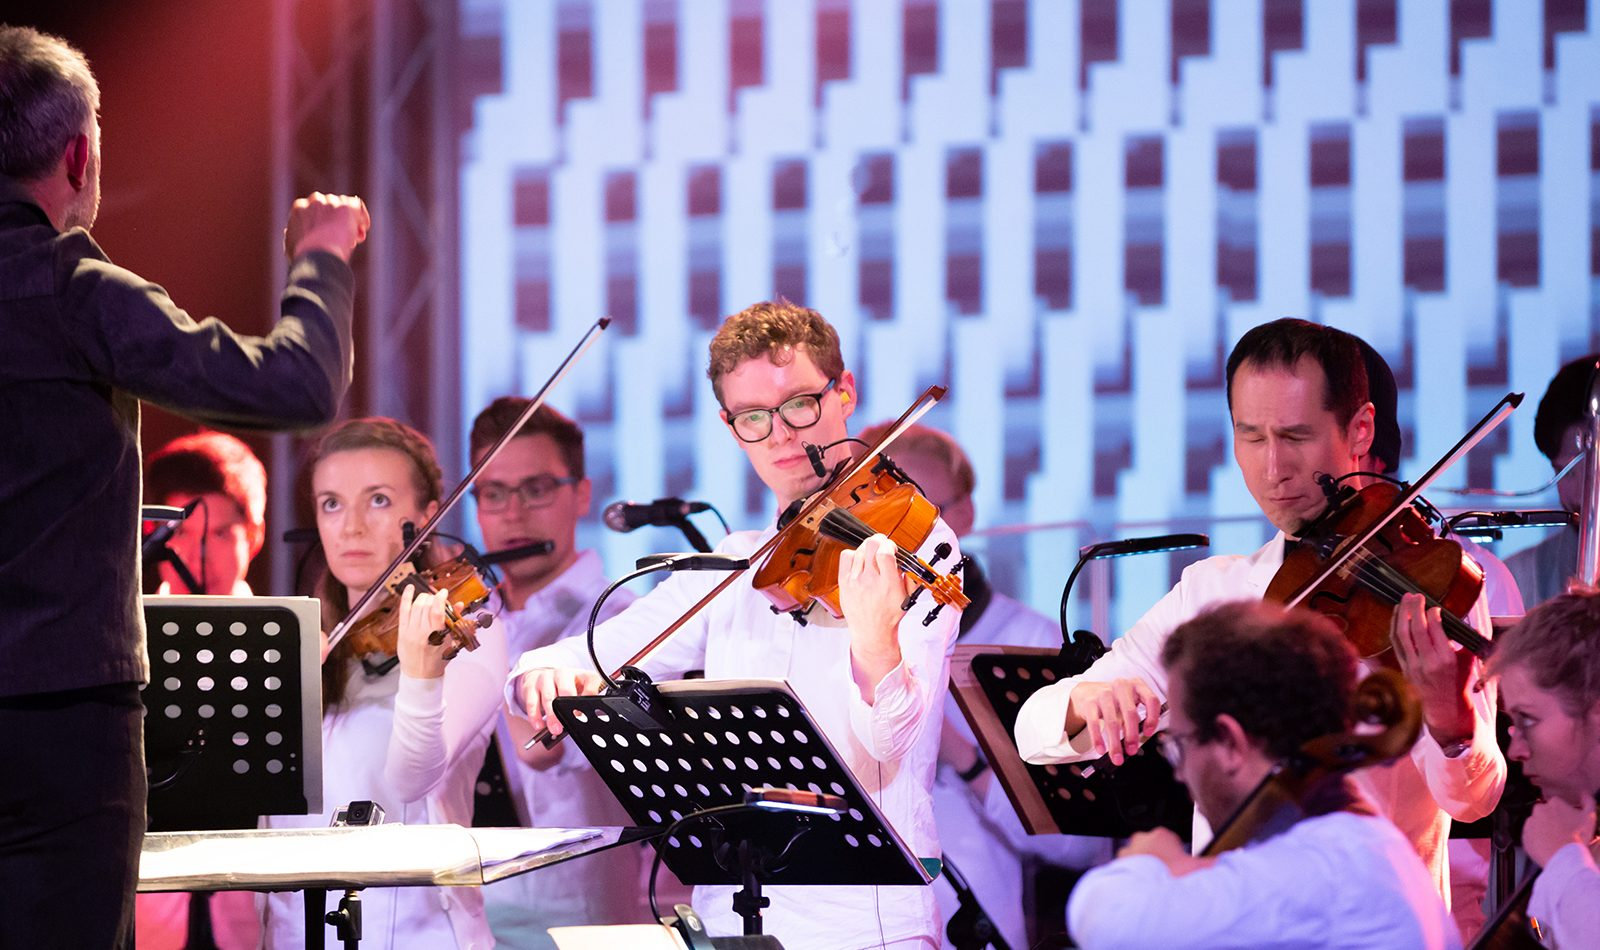 8 string players in an orchestra, dressed in white, bright lights on screen behind